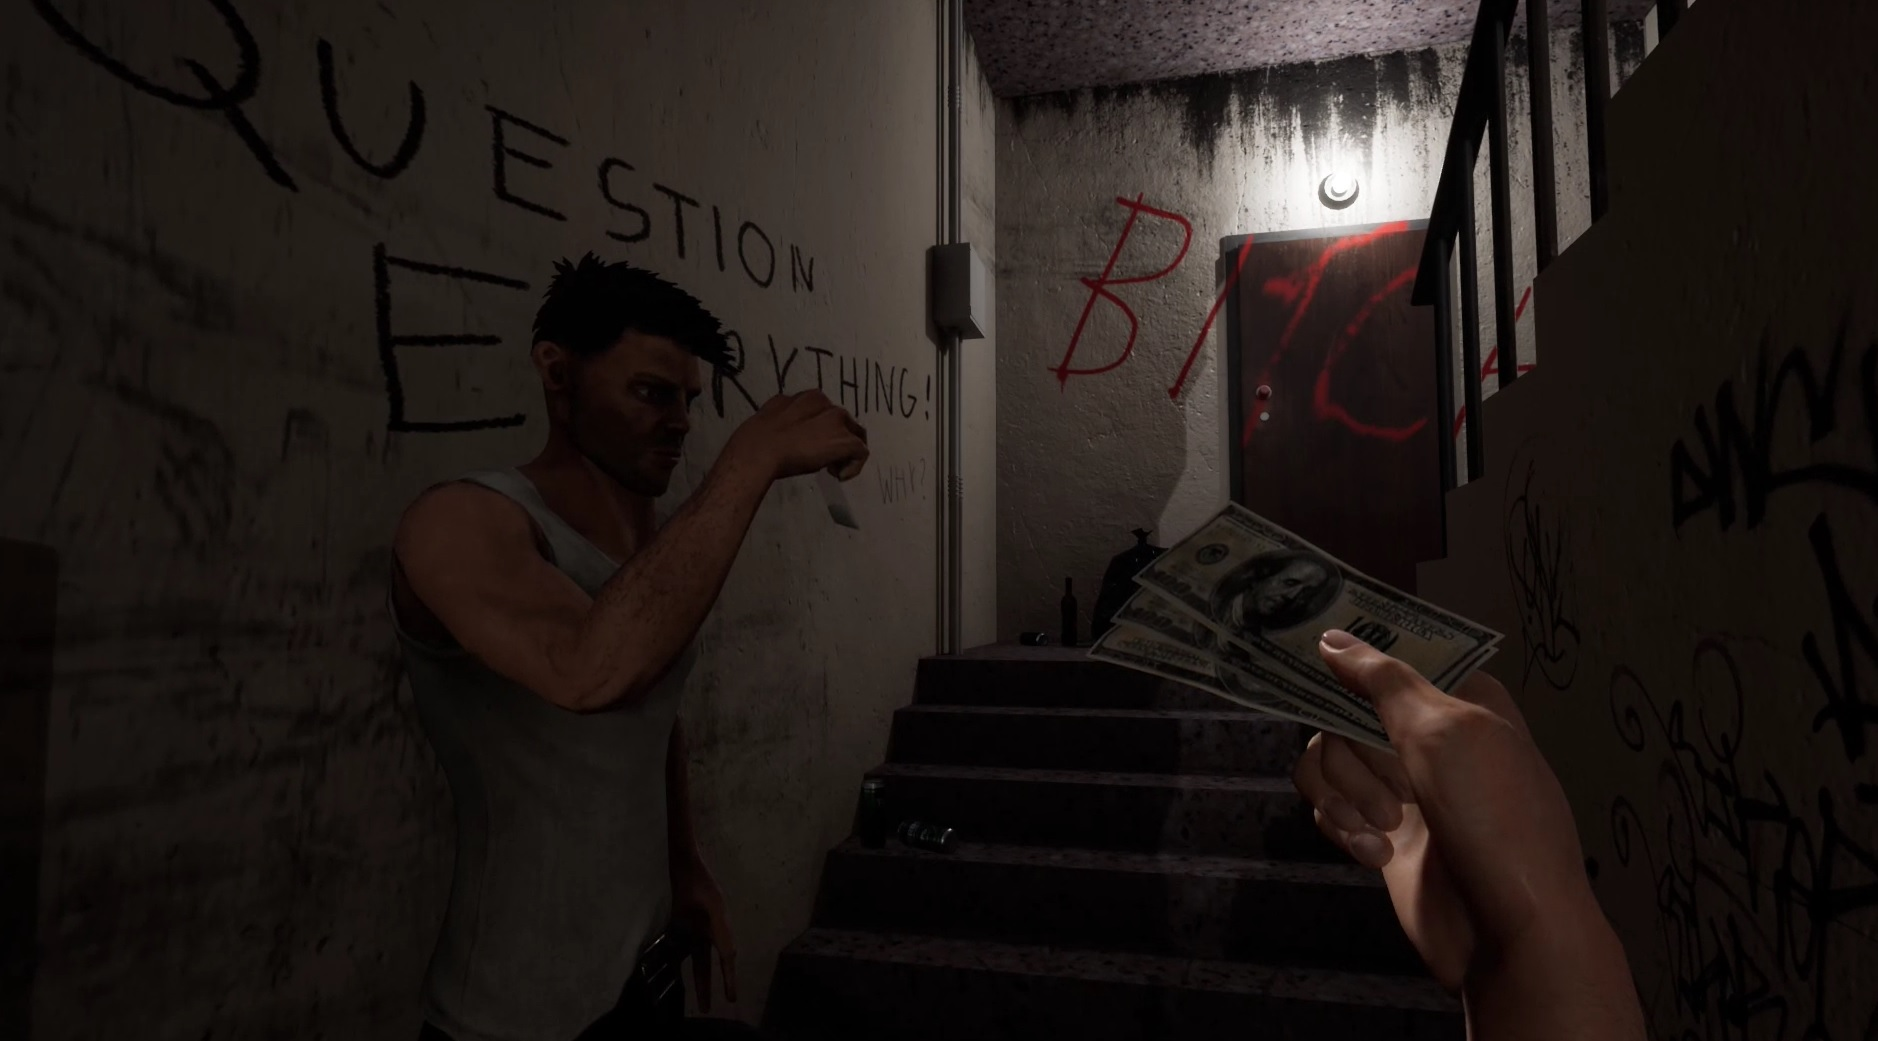 Poles are making a video game about being a drug dealer